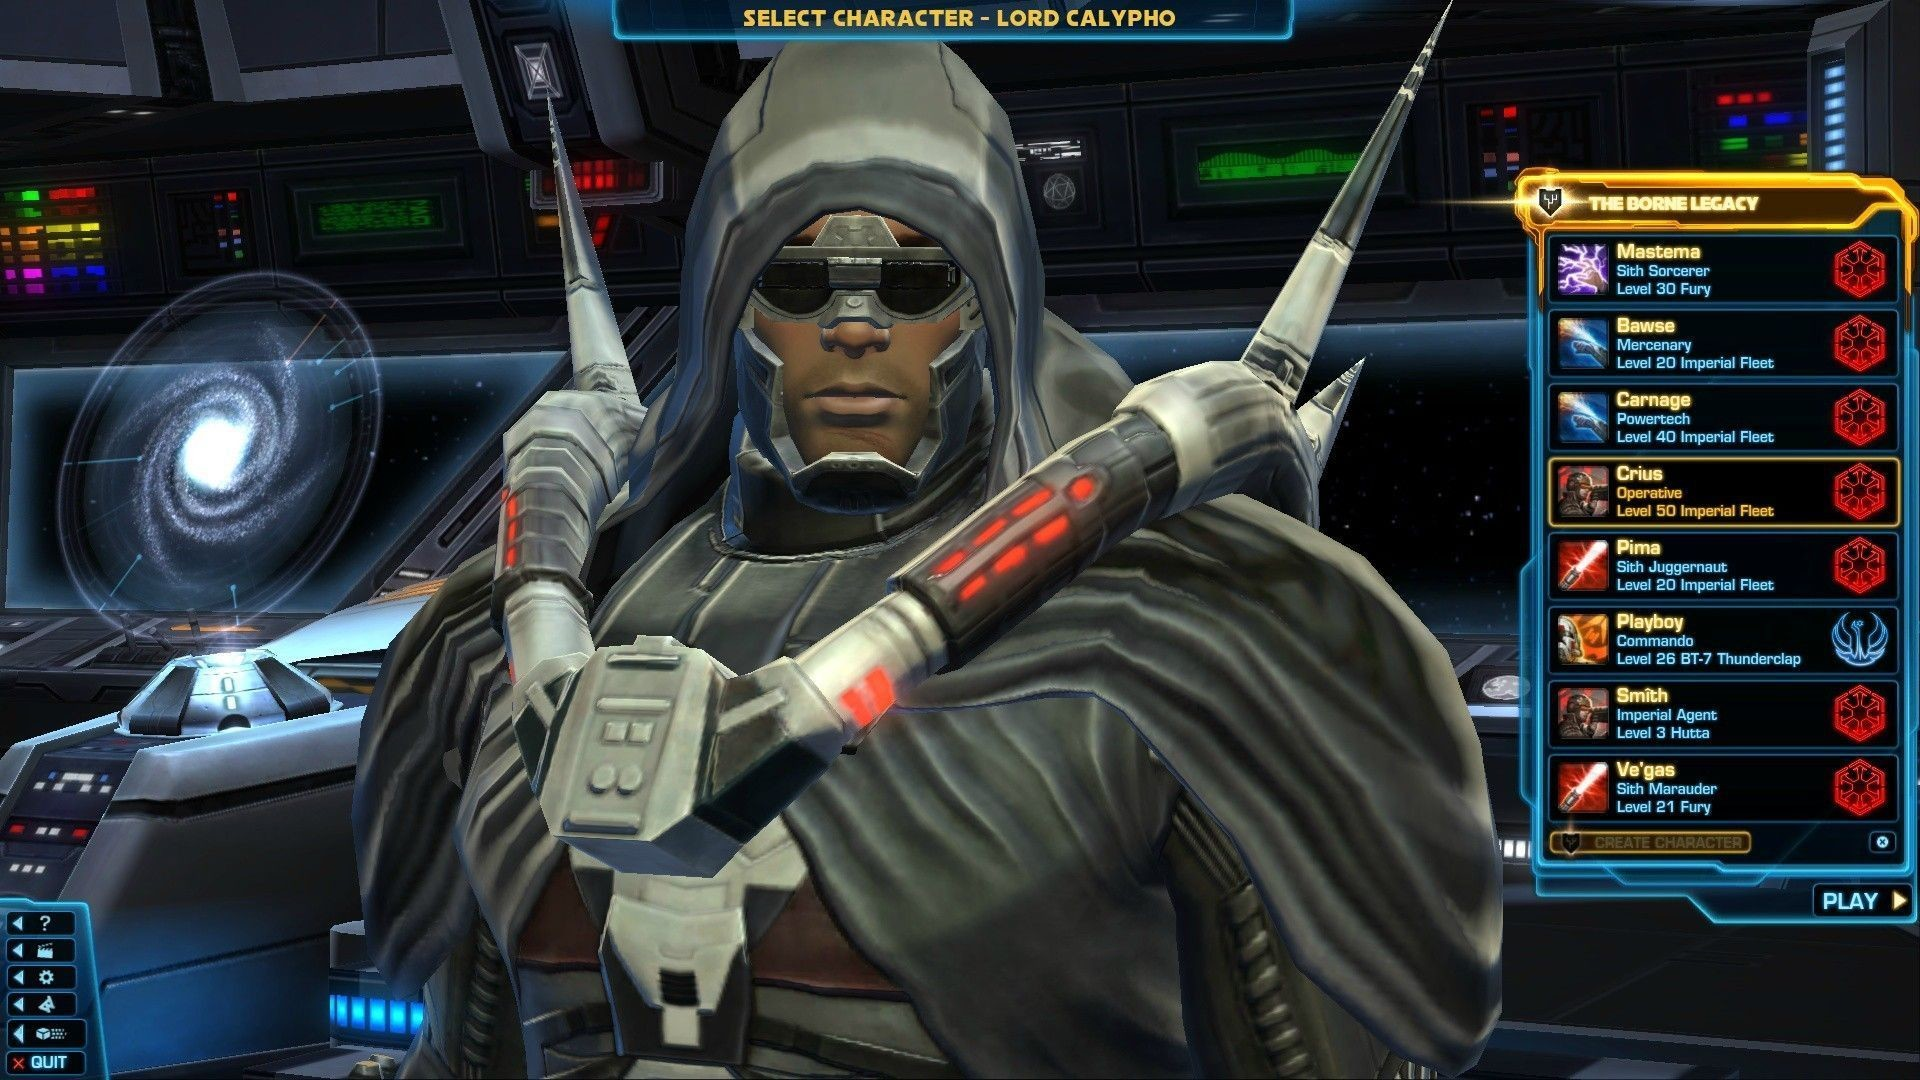 Res: 1920x1080, Swtor Wallpaper | www.wallpapertag.xyz - Best Selection of Wallpapers